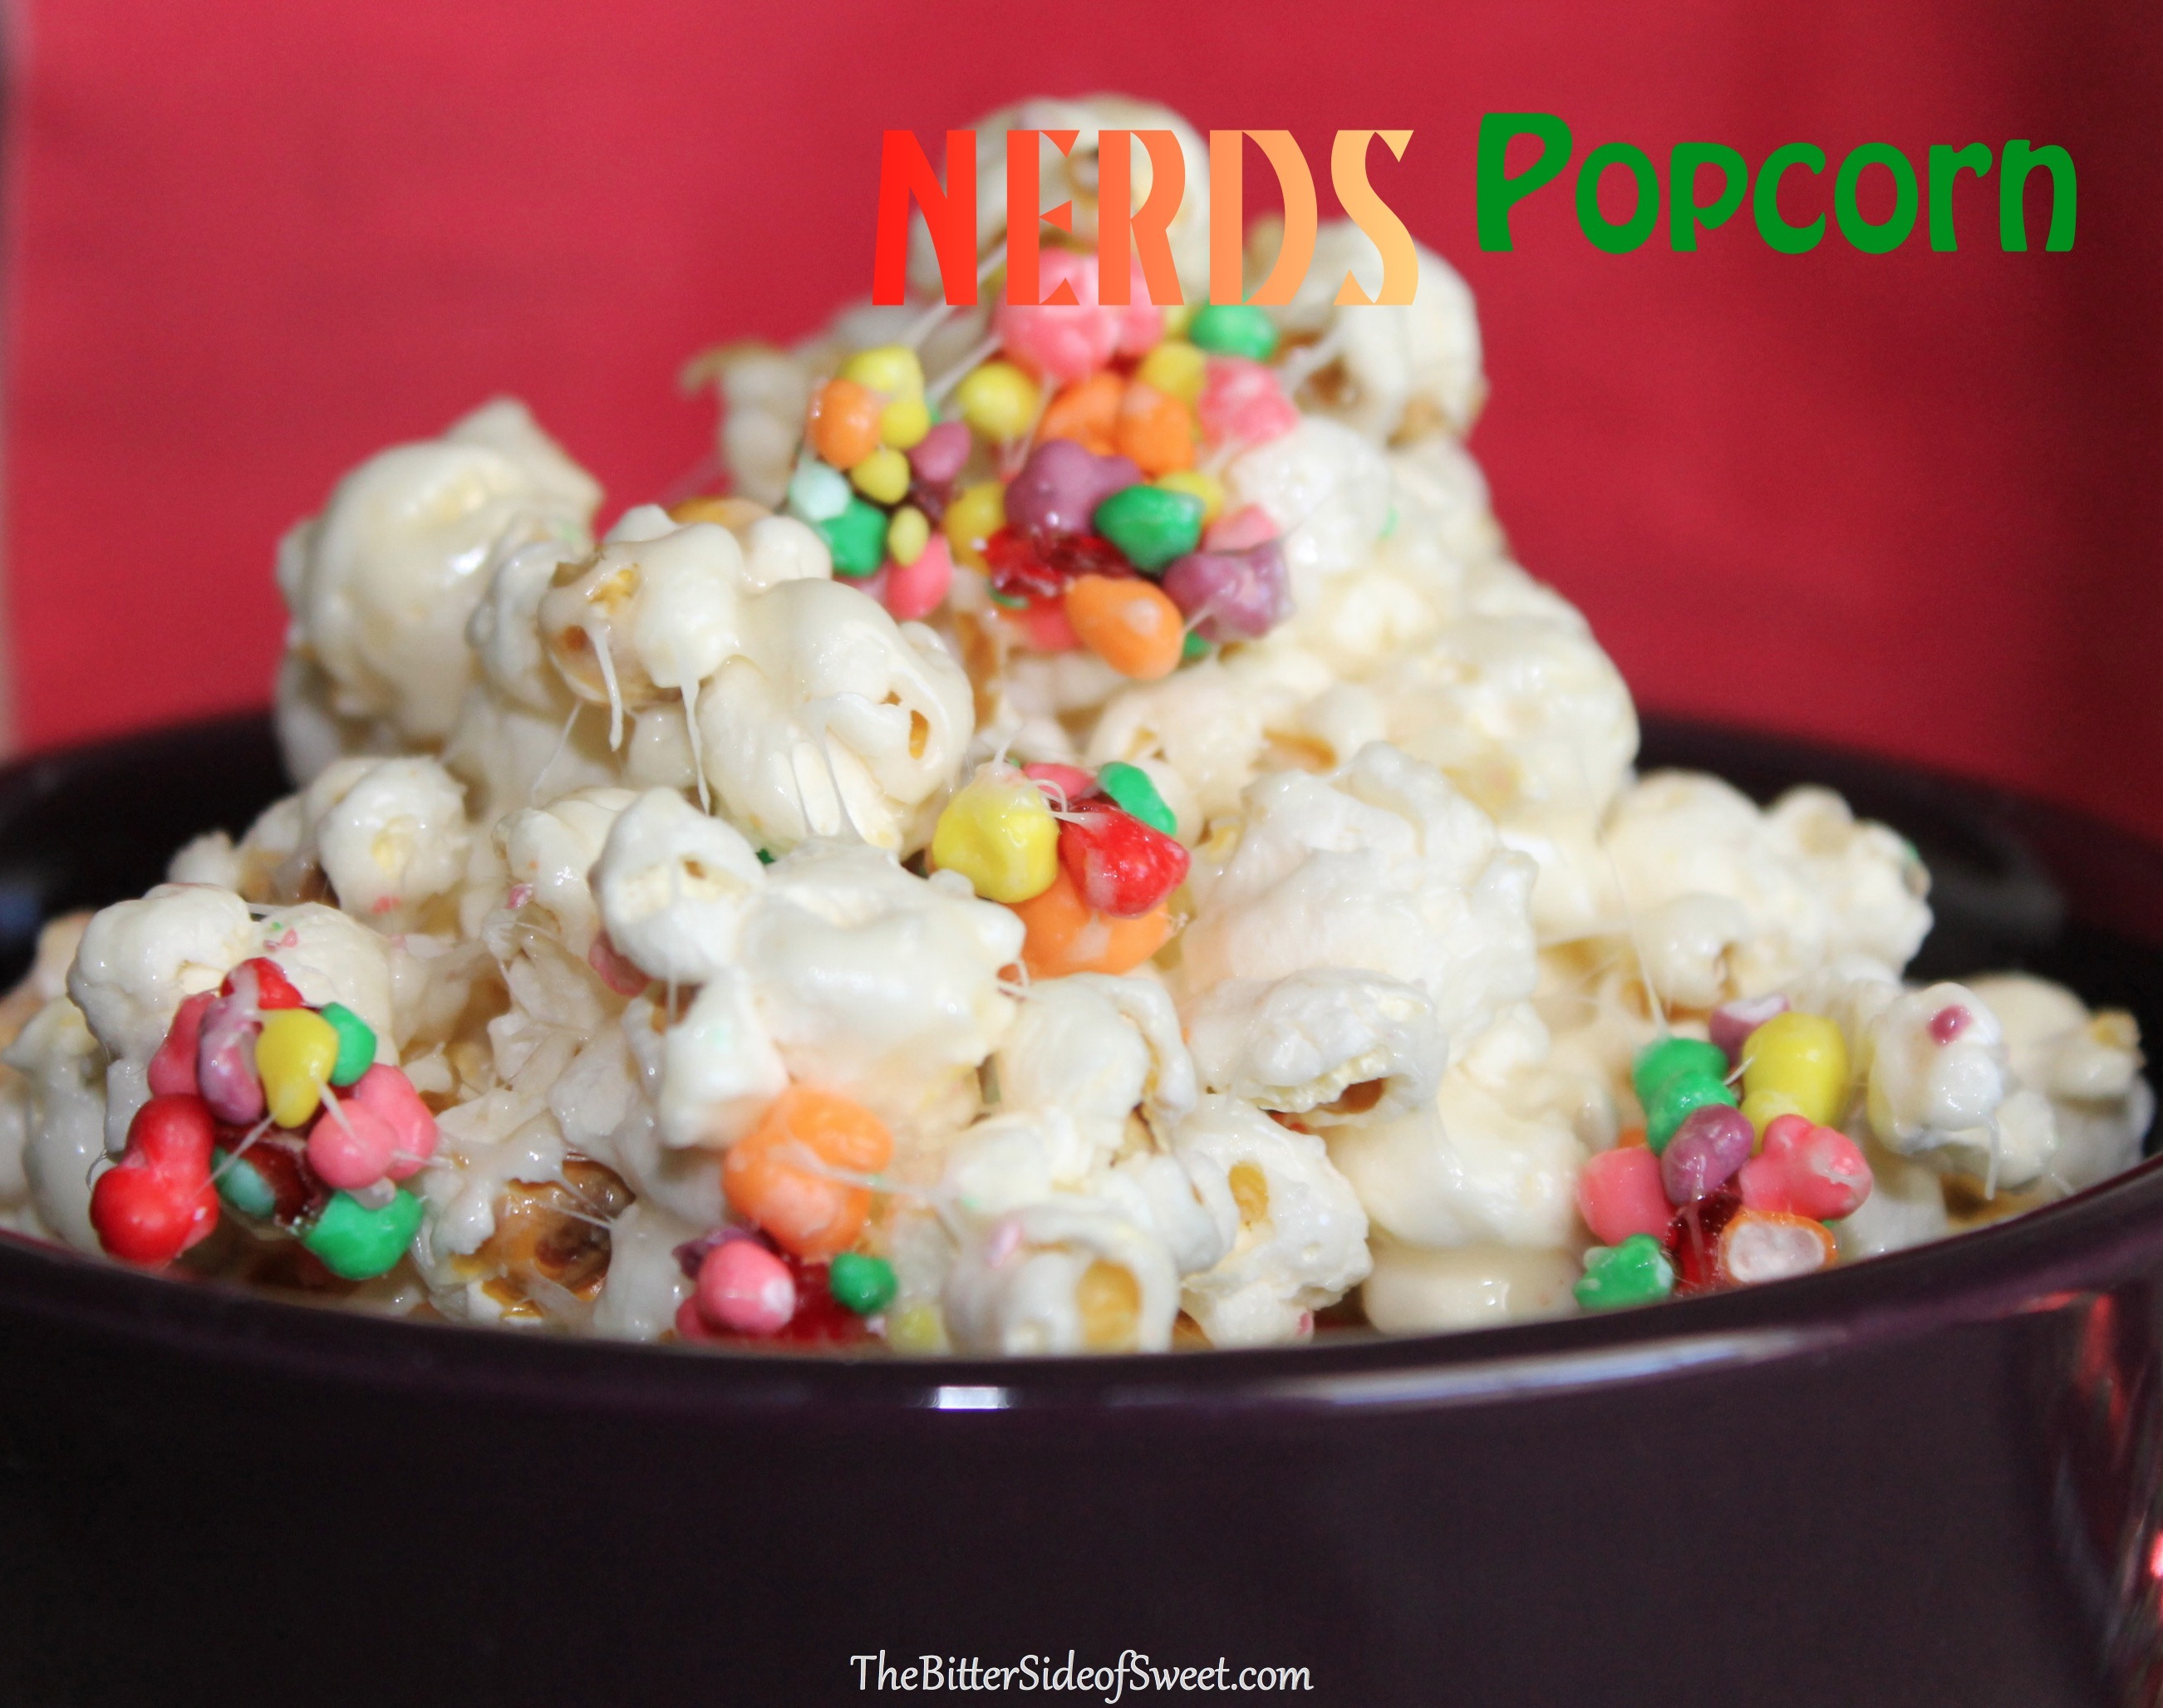 Rainbow Nerds Rope Candy Popcorn